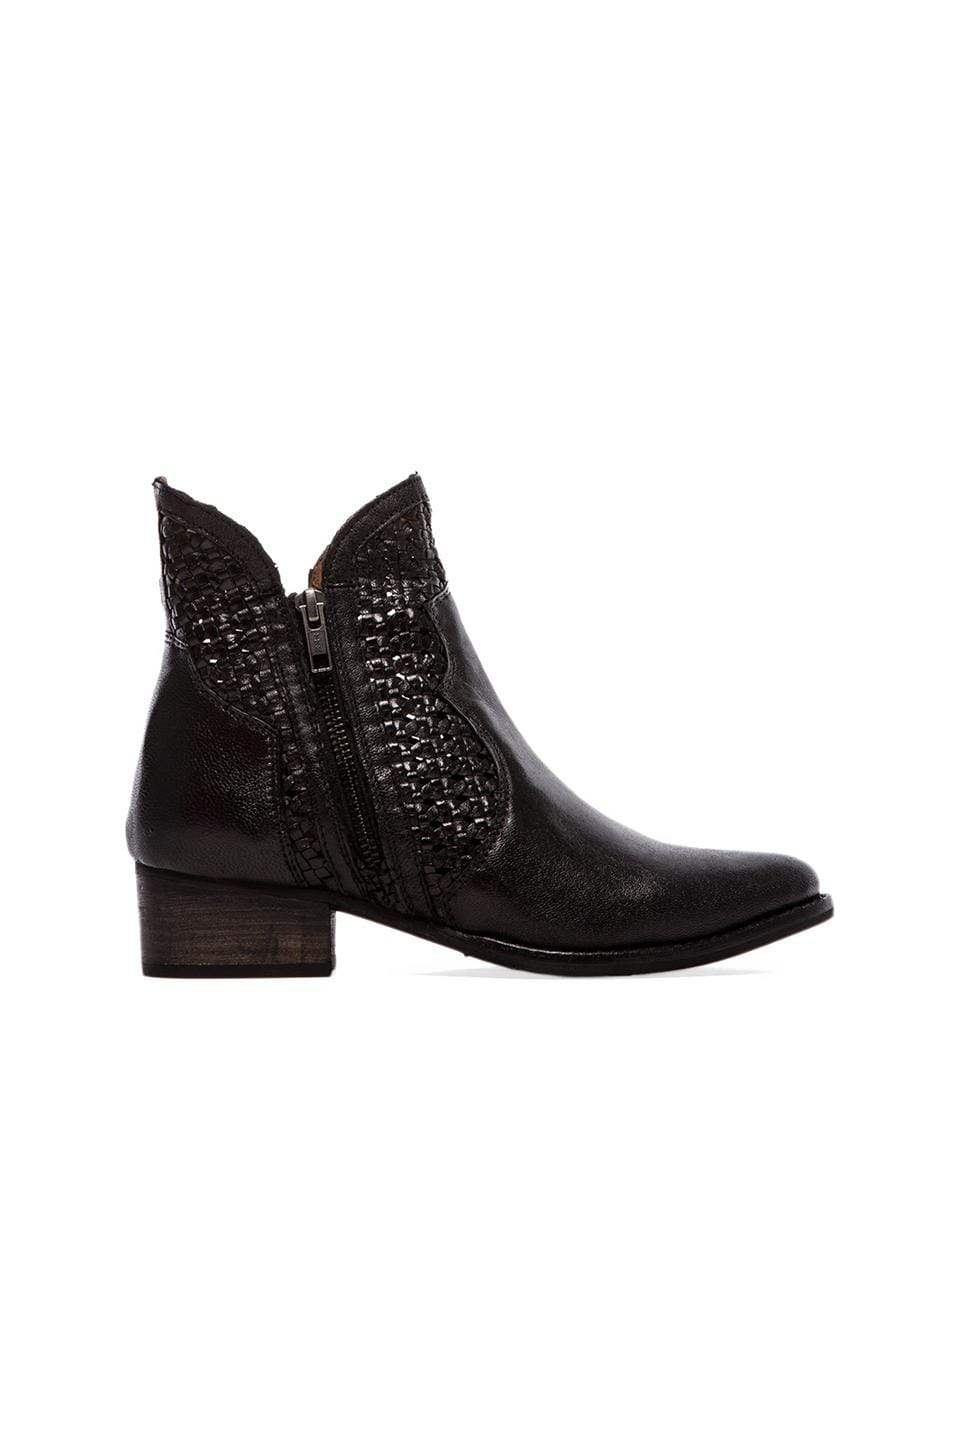 Seychelles Flip a Coin Boot in Black